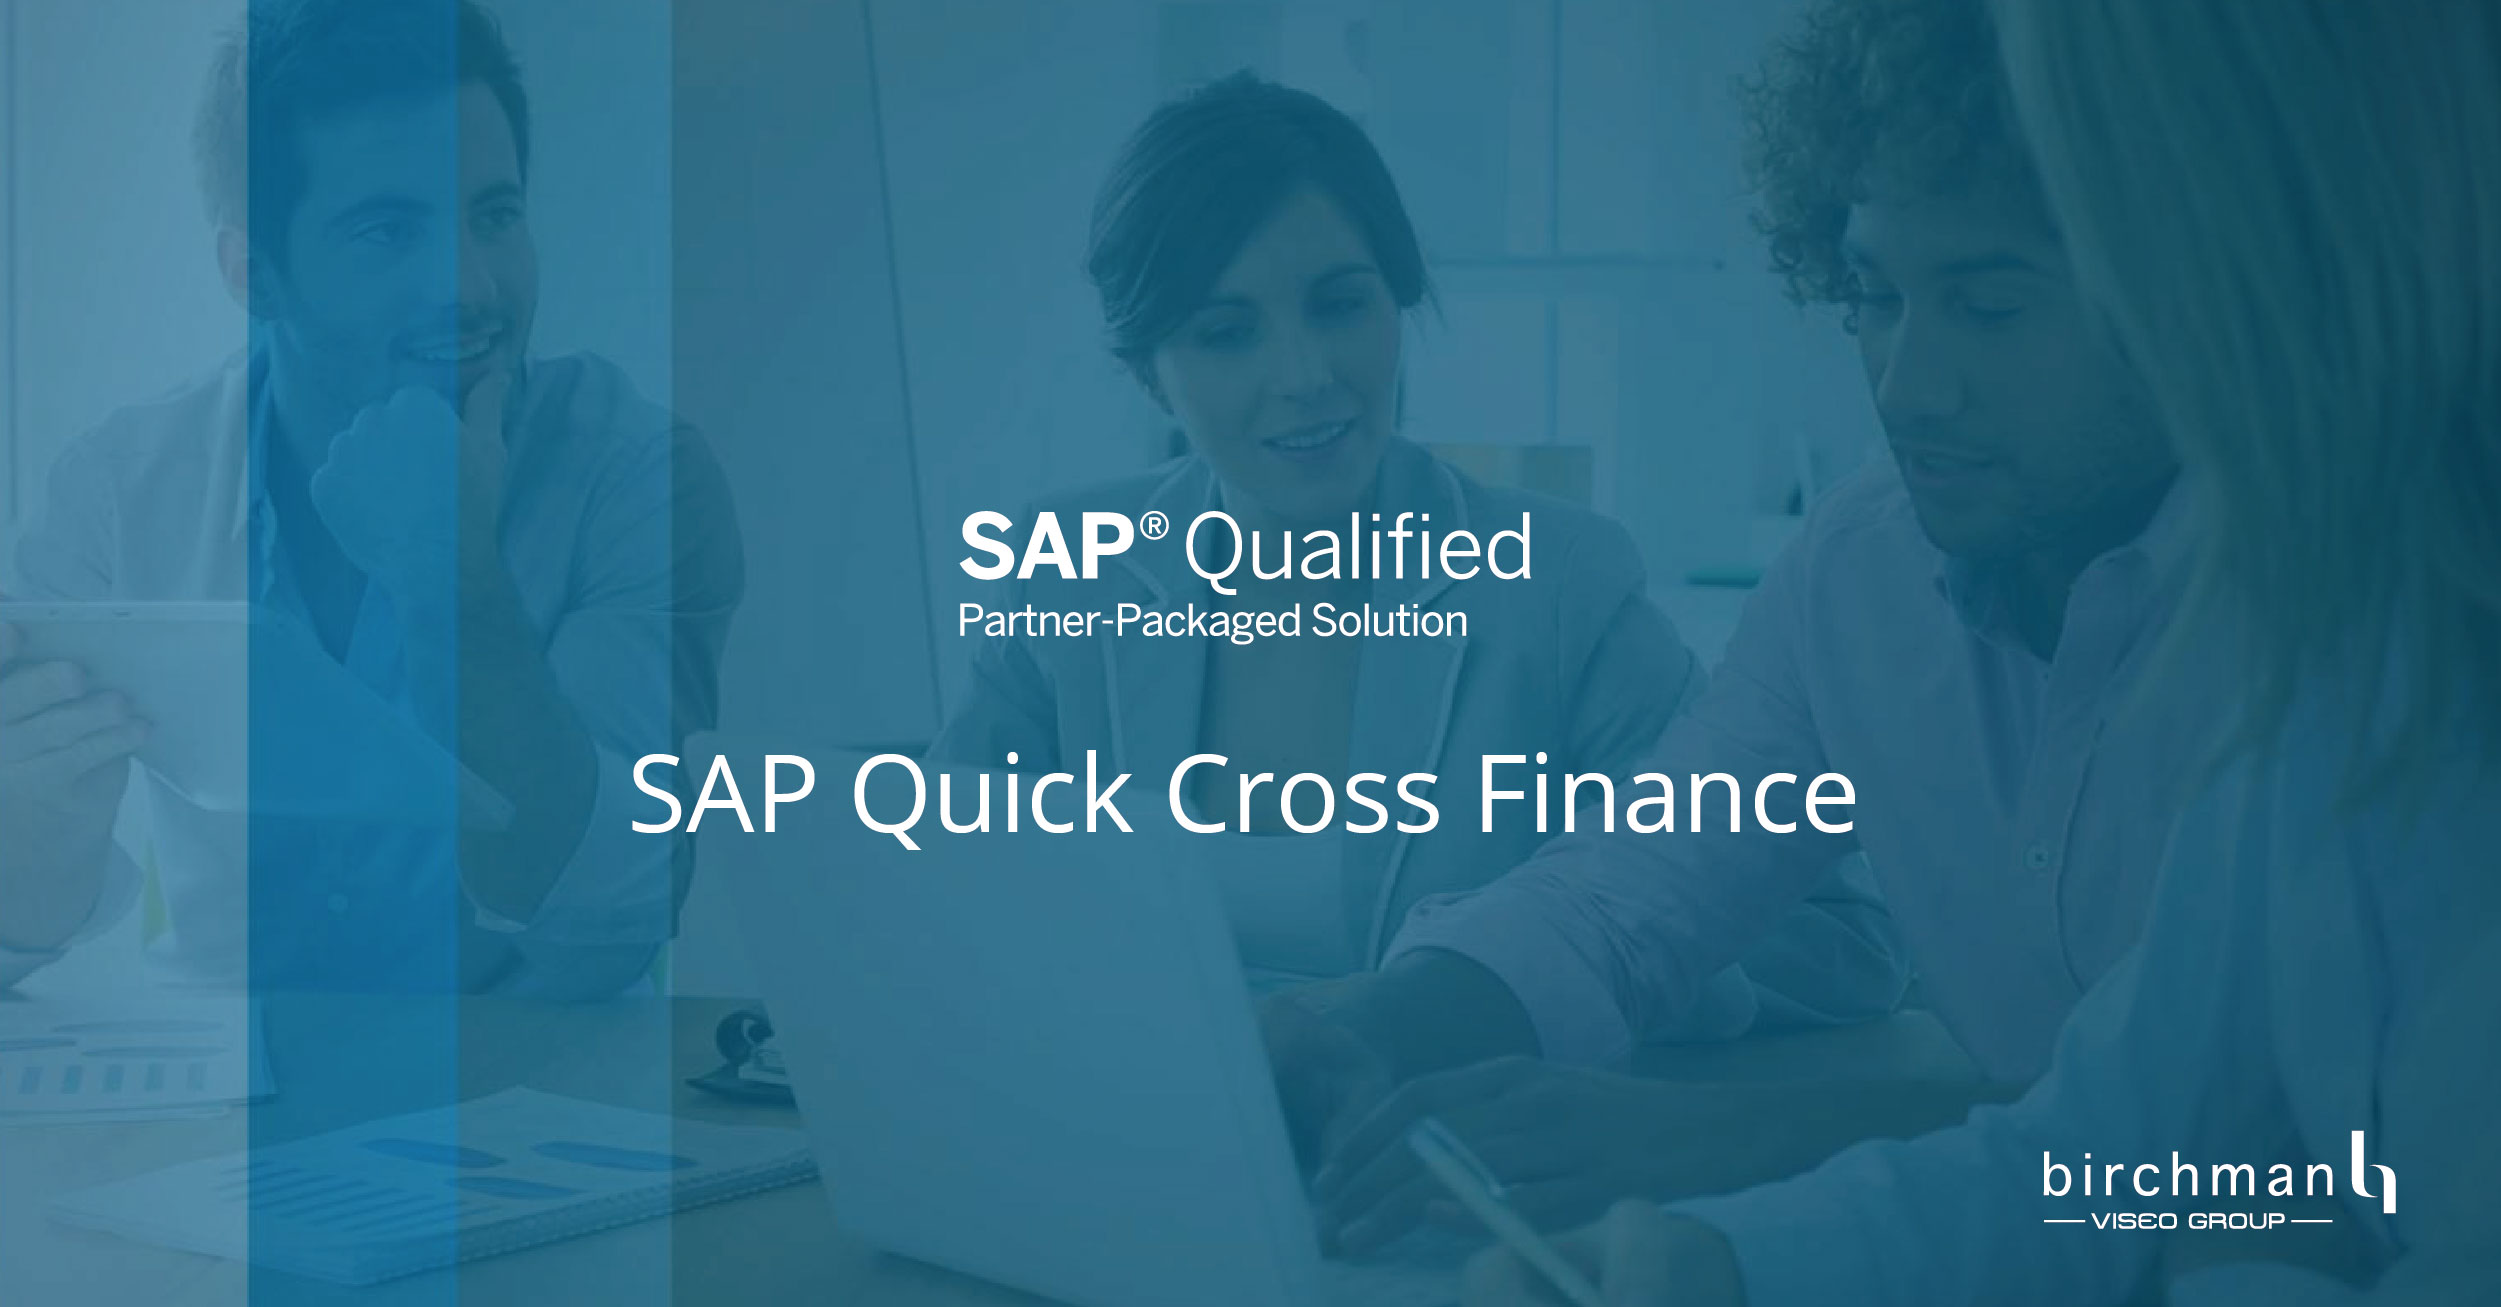 Quick Cross Finance - SAP Qualified Partner-Packaged Solution